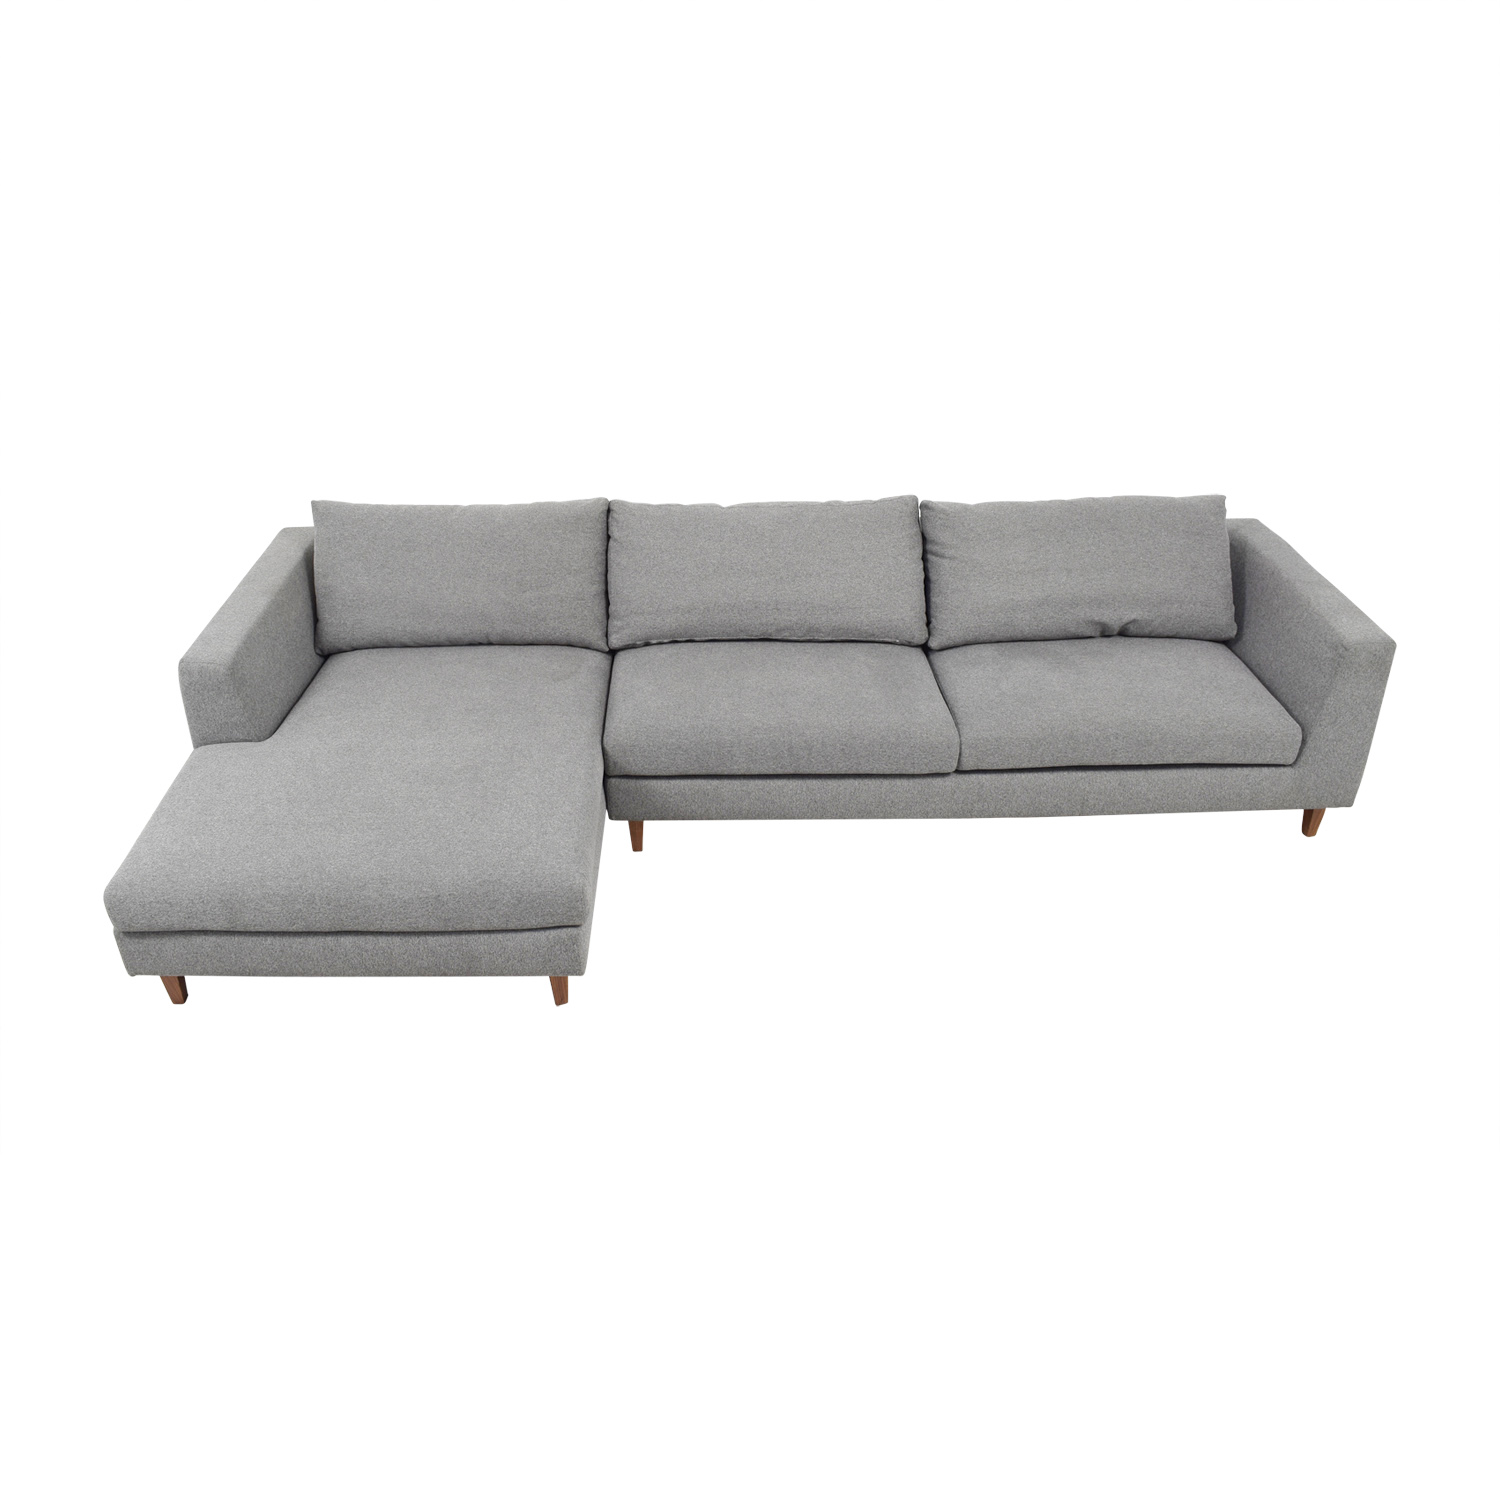 Asher Heather Performance Felt Left Chaise Sectional